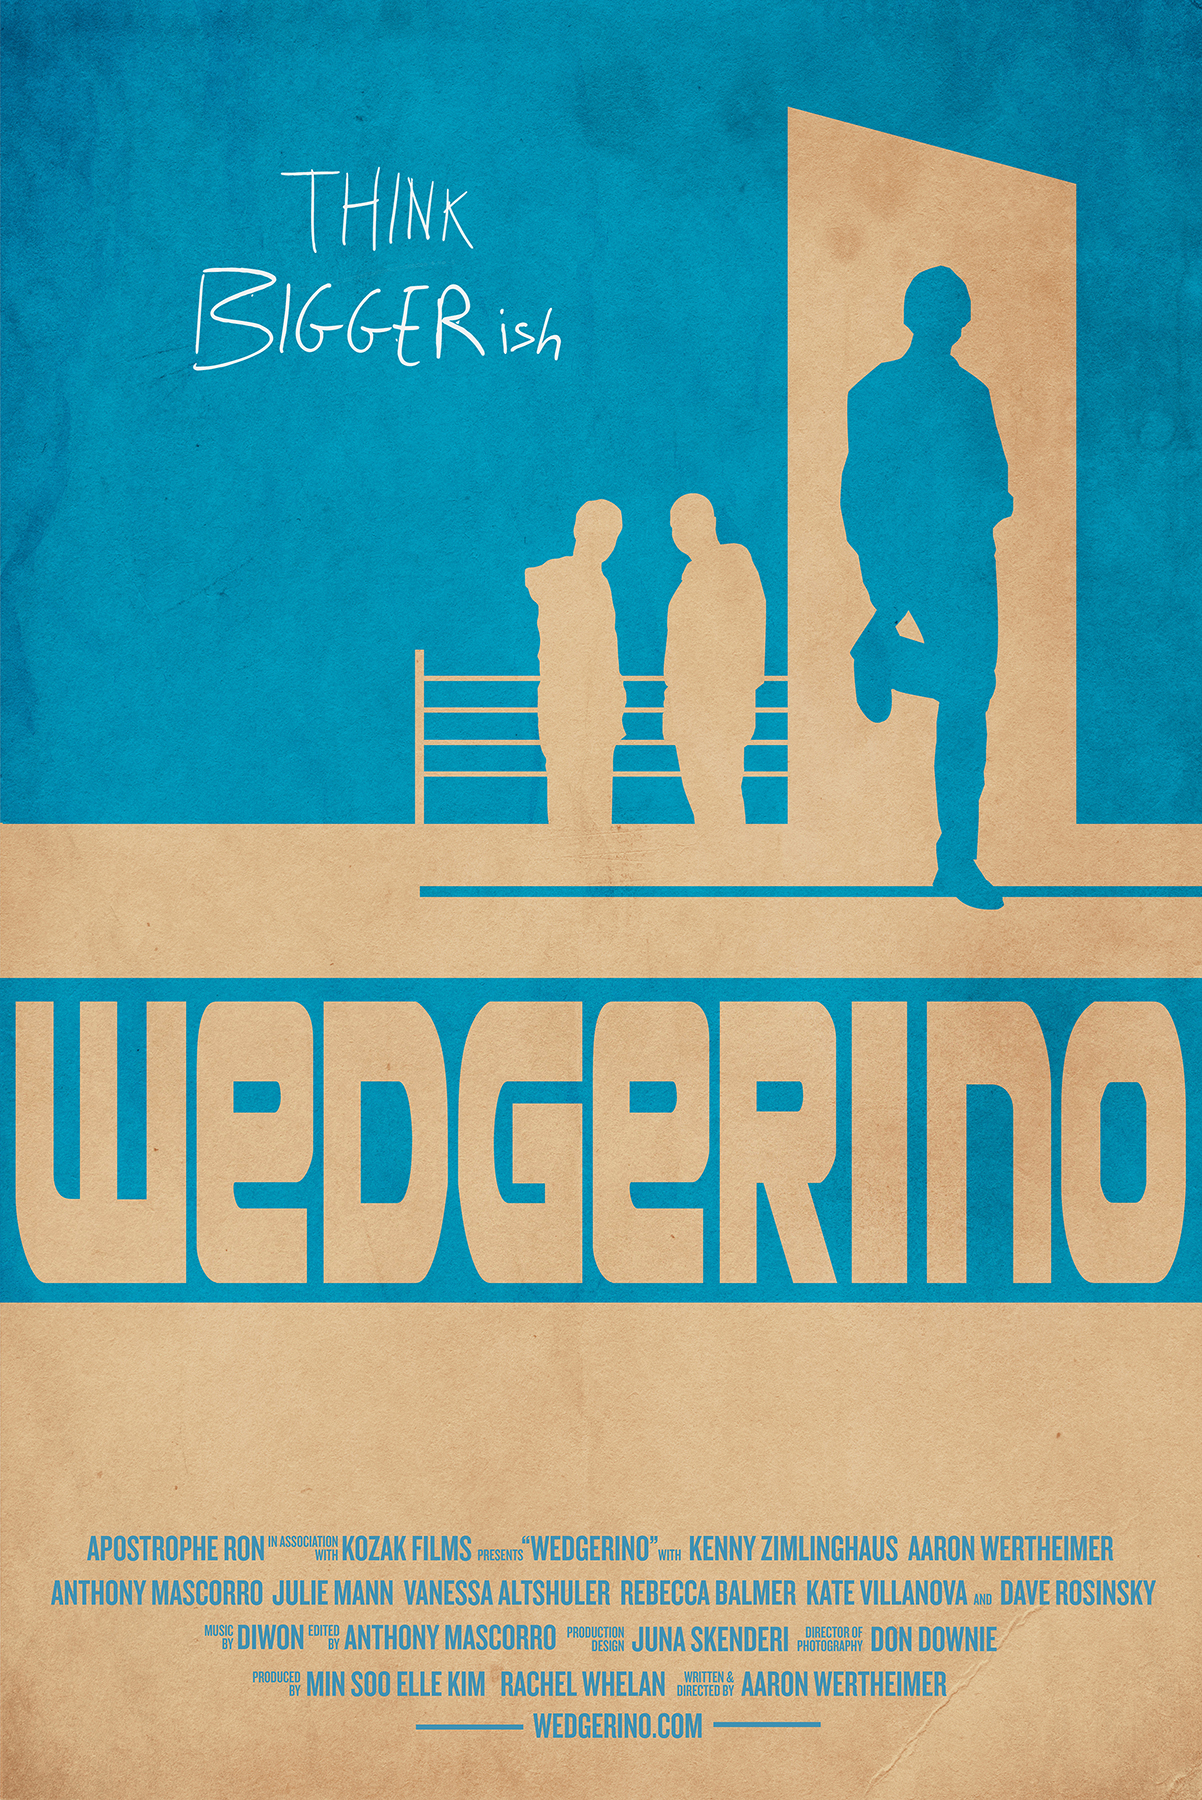 Wedgerino